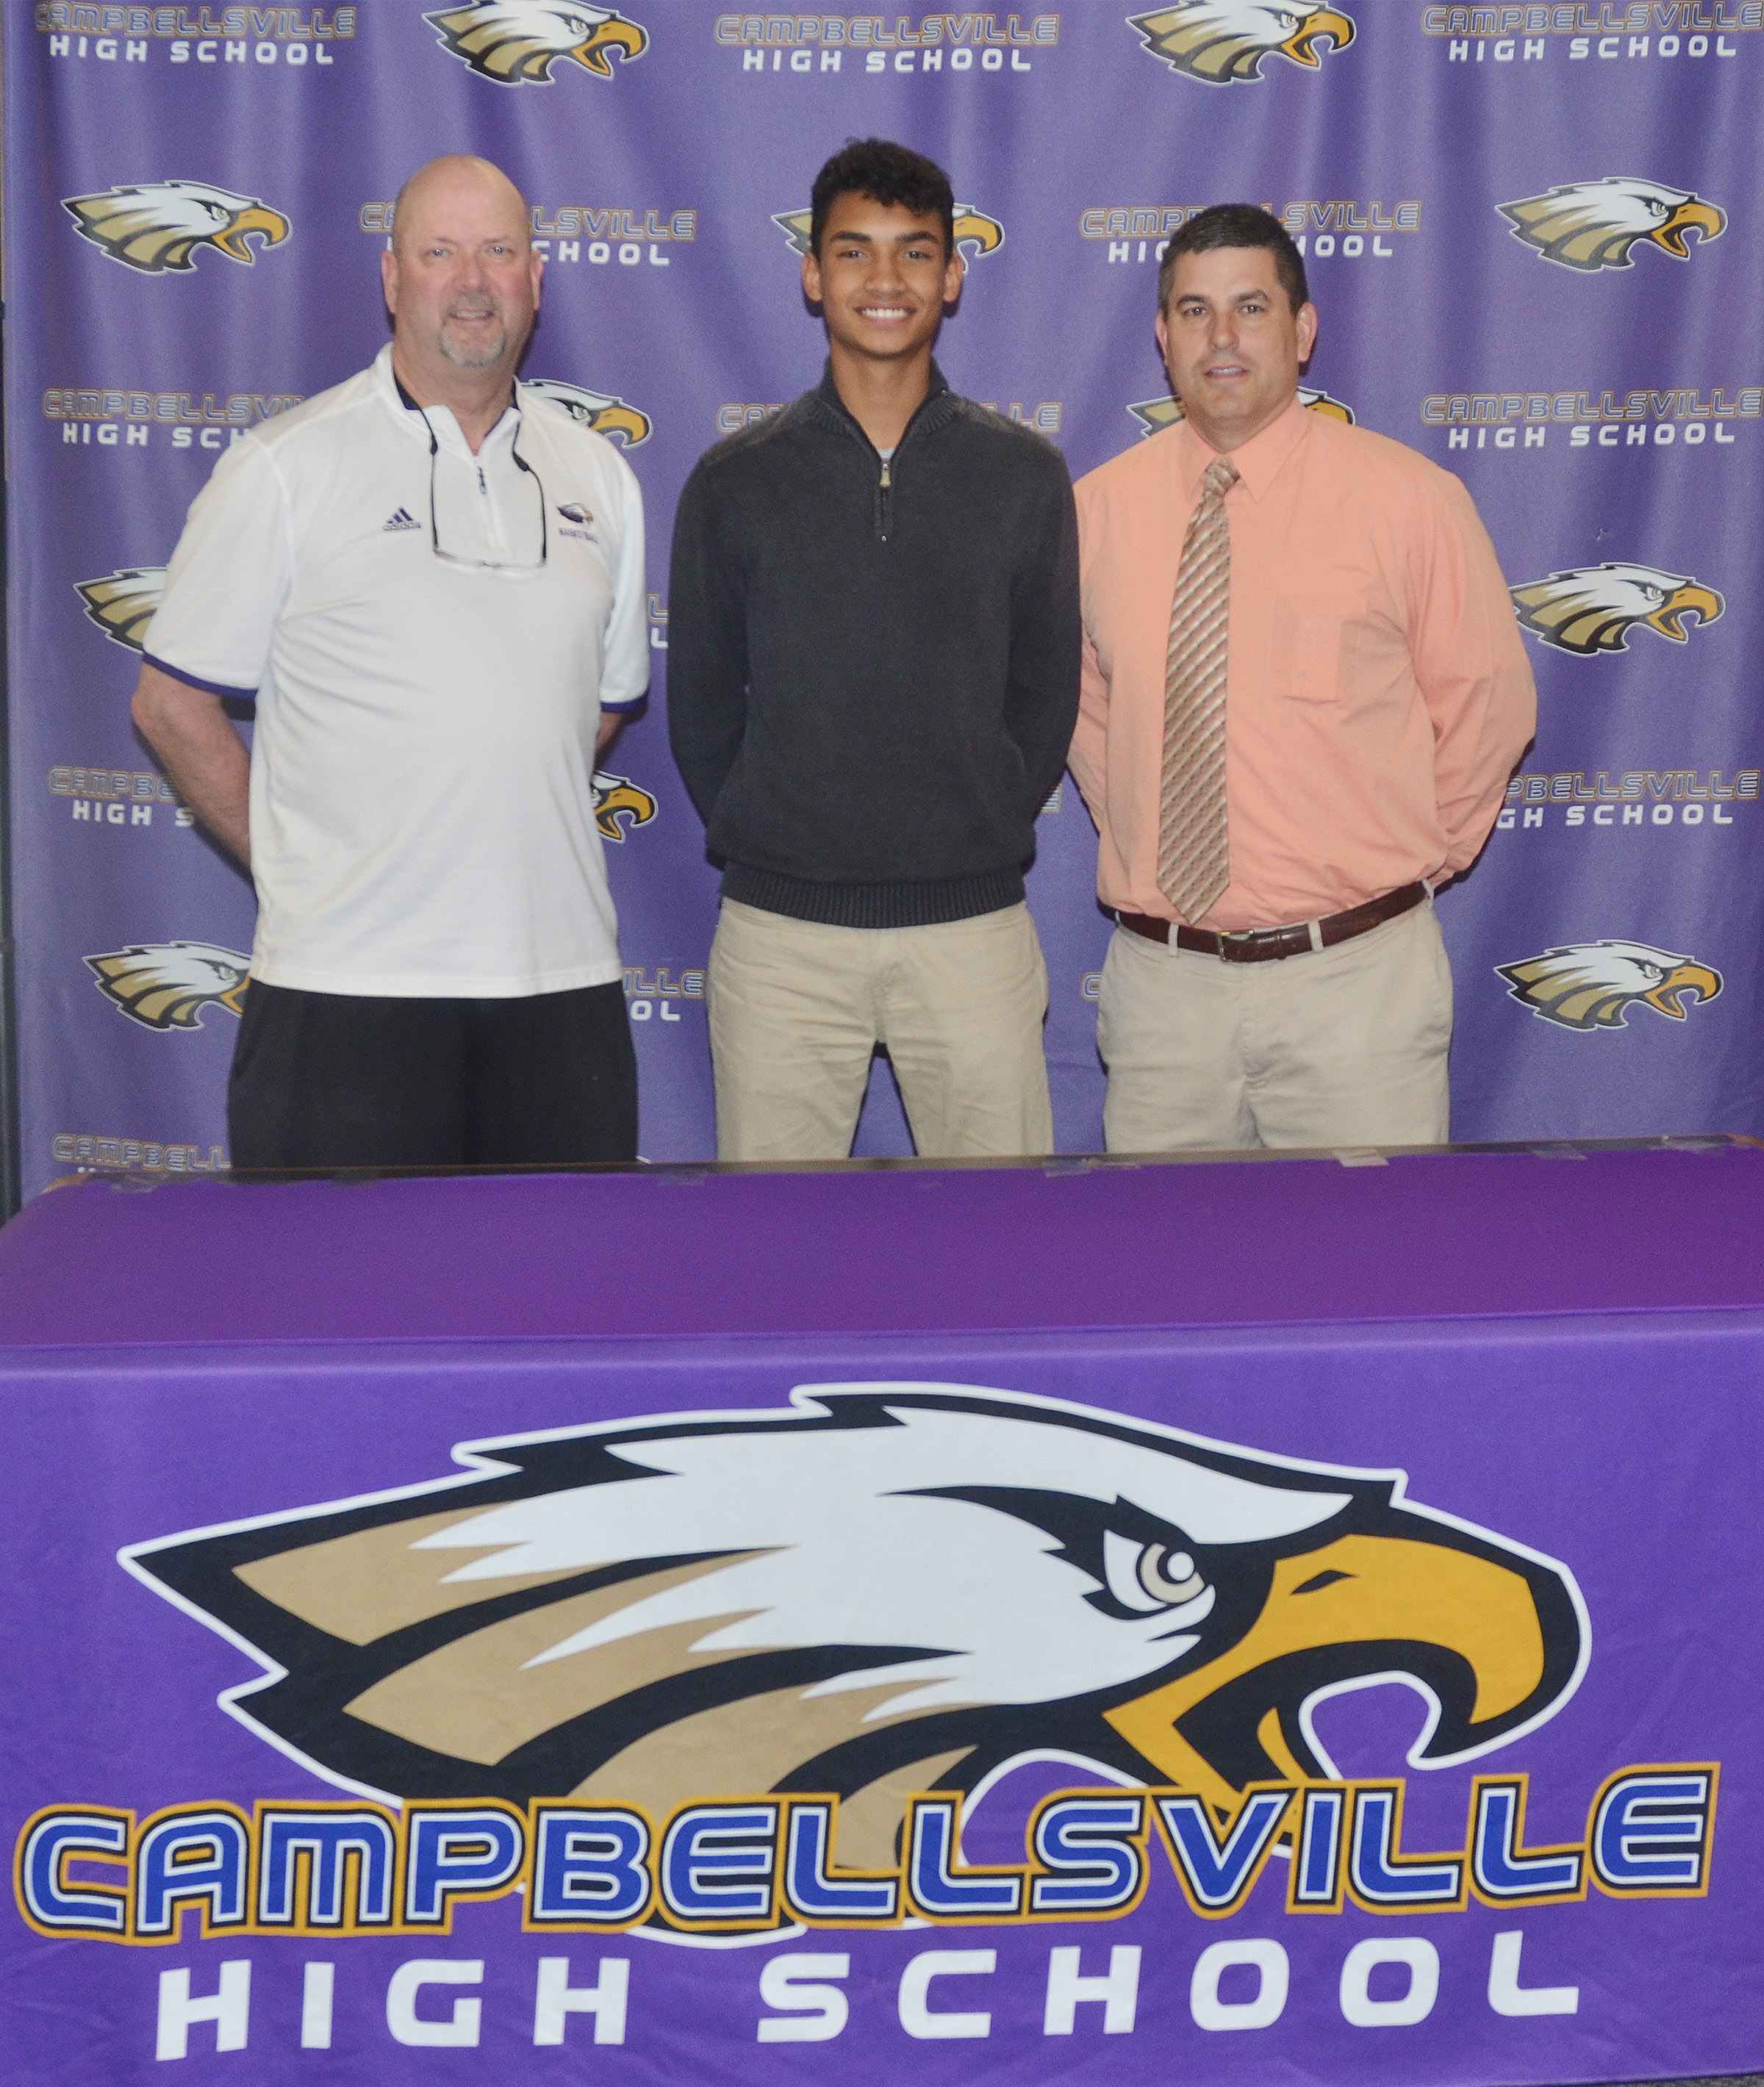 Campbellsville High School soccer player Daniel Silva will continue his academic and athletic career at Campbellsville University. Silva recently signed his letter of intent in a special ceremony with friends, family members, classmates and teammates. From left are CHS Athletic Director Tim Davis, Silva and CHS Principal Kirby Smith.